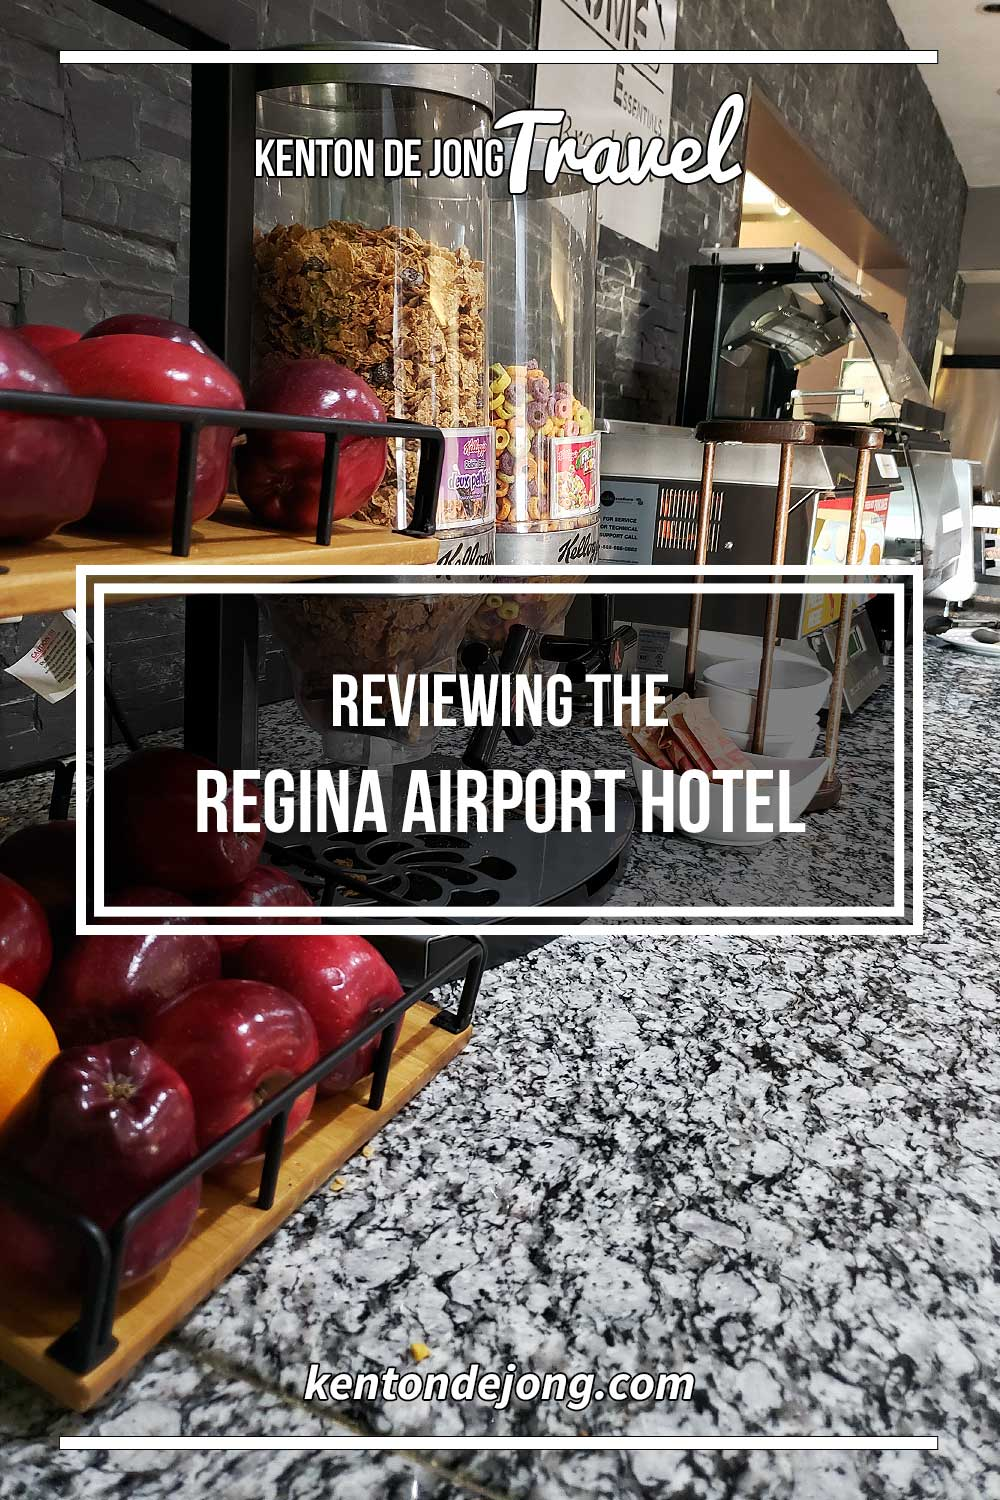 Review of the Regina Airport Hotel